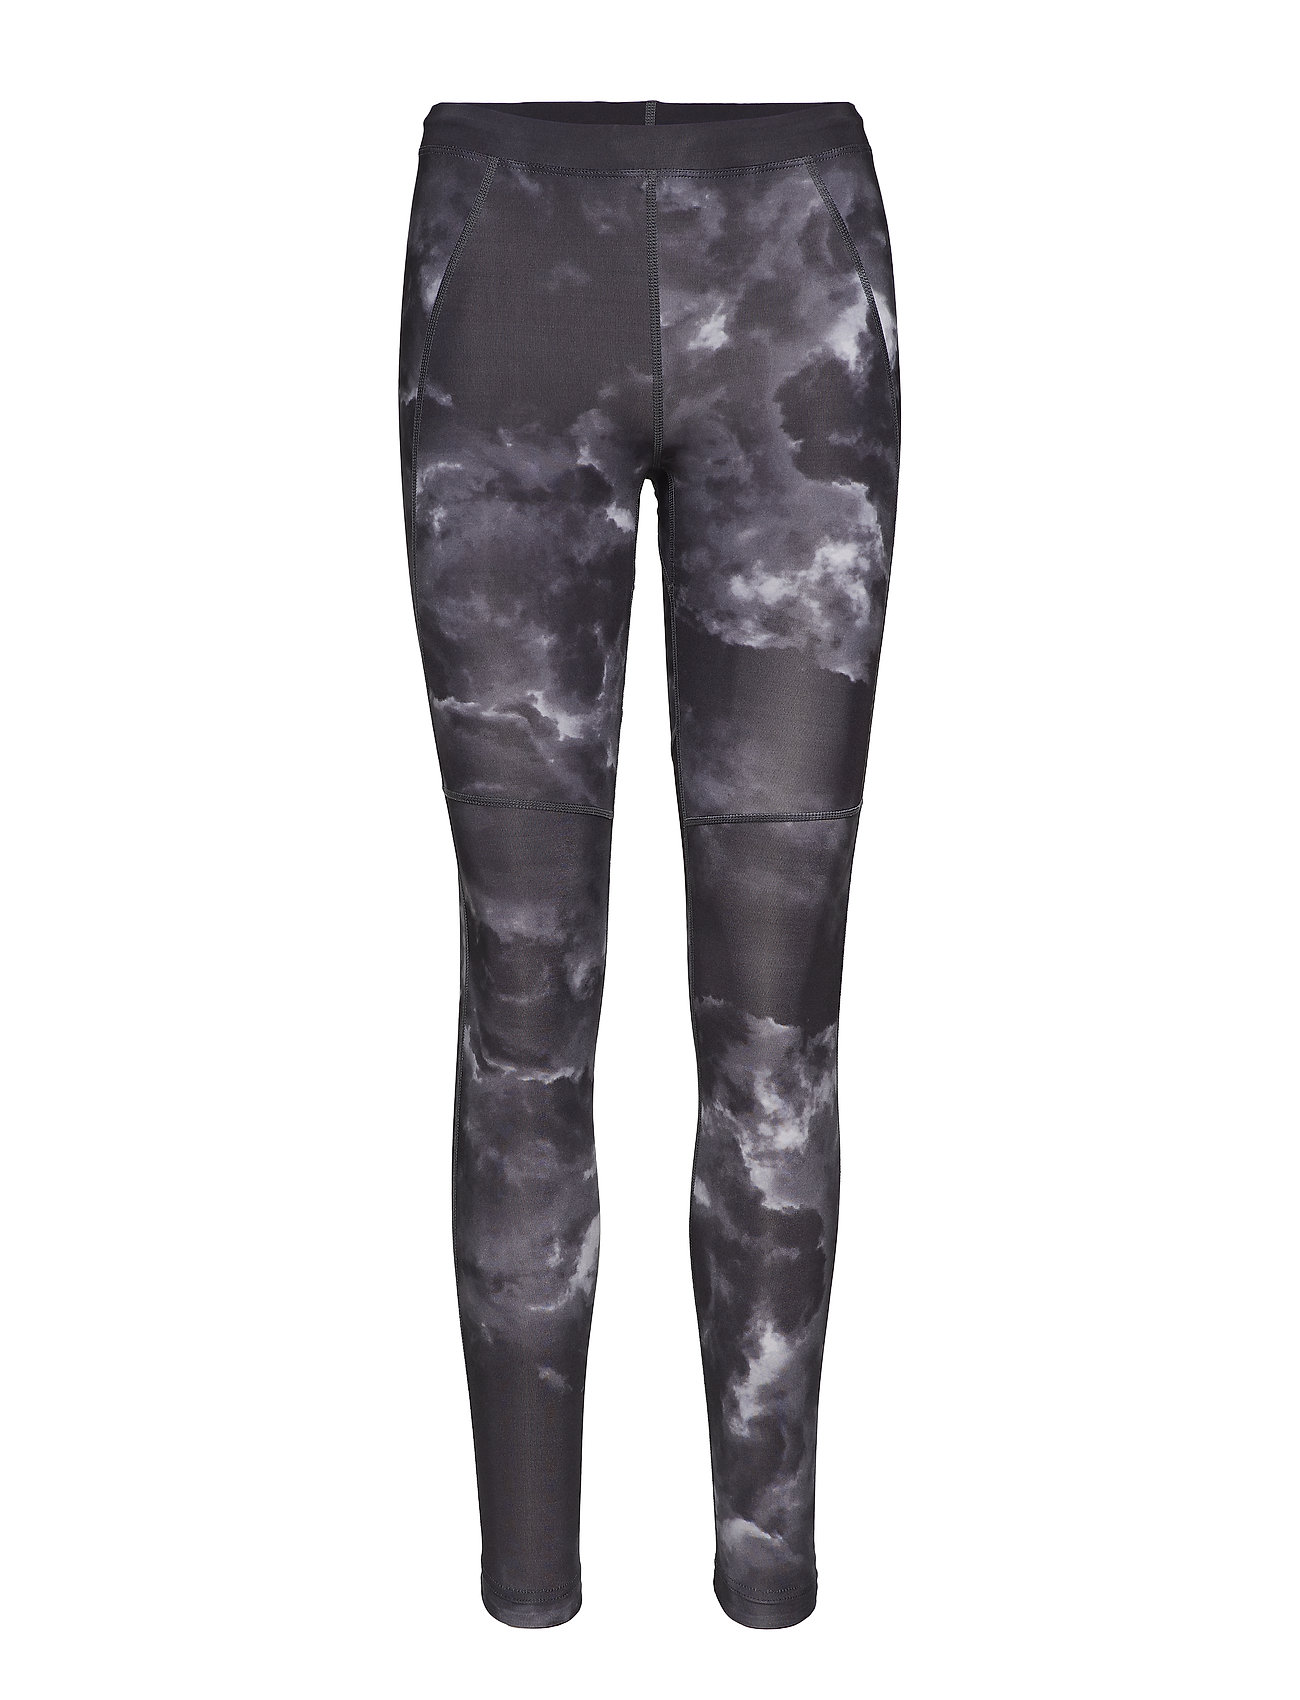 Newline BLACK IMPACT CAMO Tights